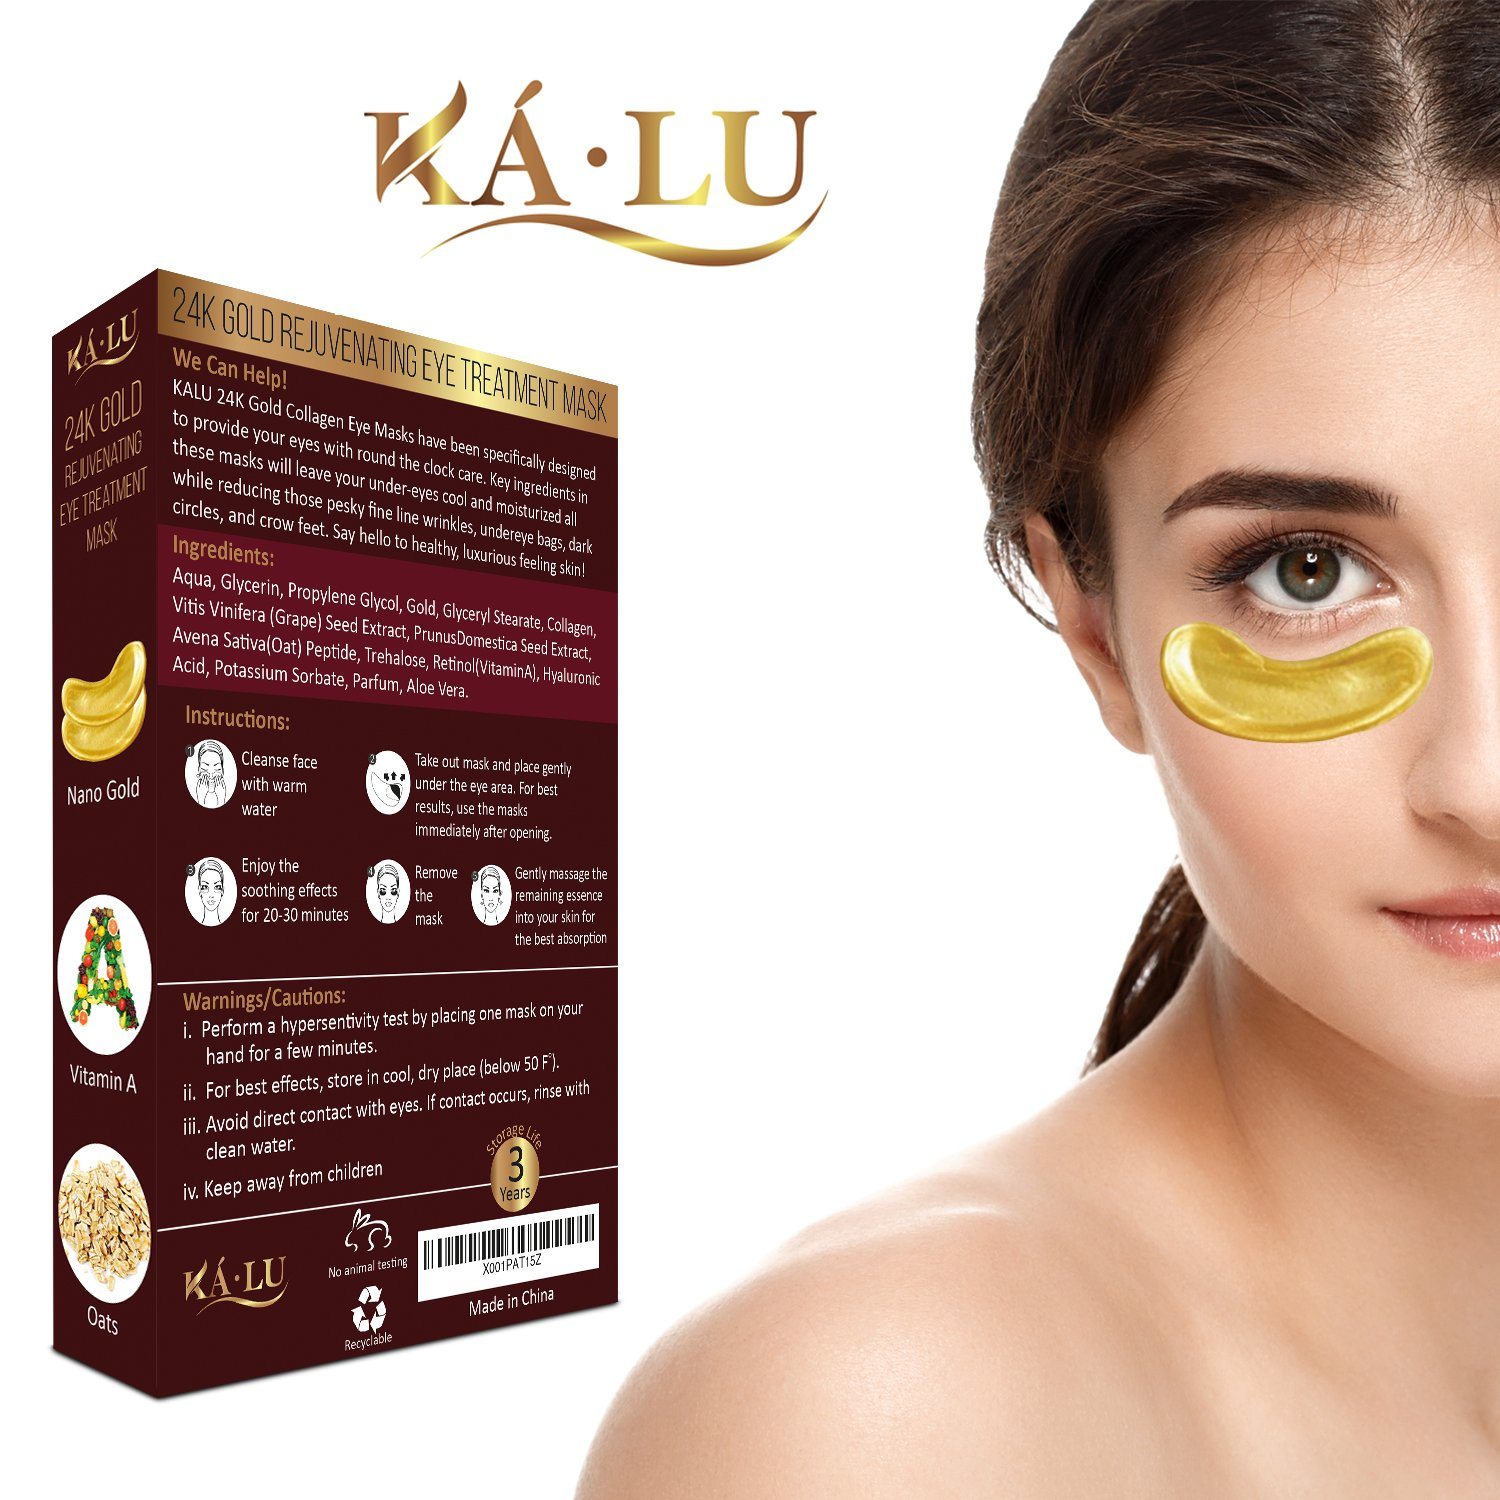 Amazon.com: 24K Gold Rejuvenating Eye Treatment Mask - Reduce Puffiness and Dark Circles under Eyes - Anti Aging, Wrinkle care Gold Collagen Pads for Women ...